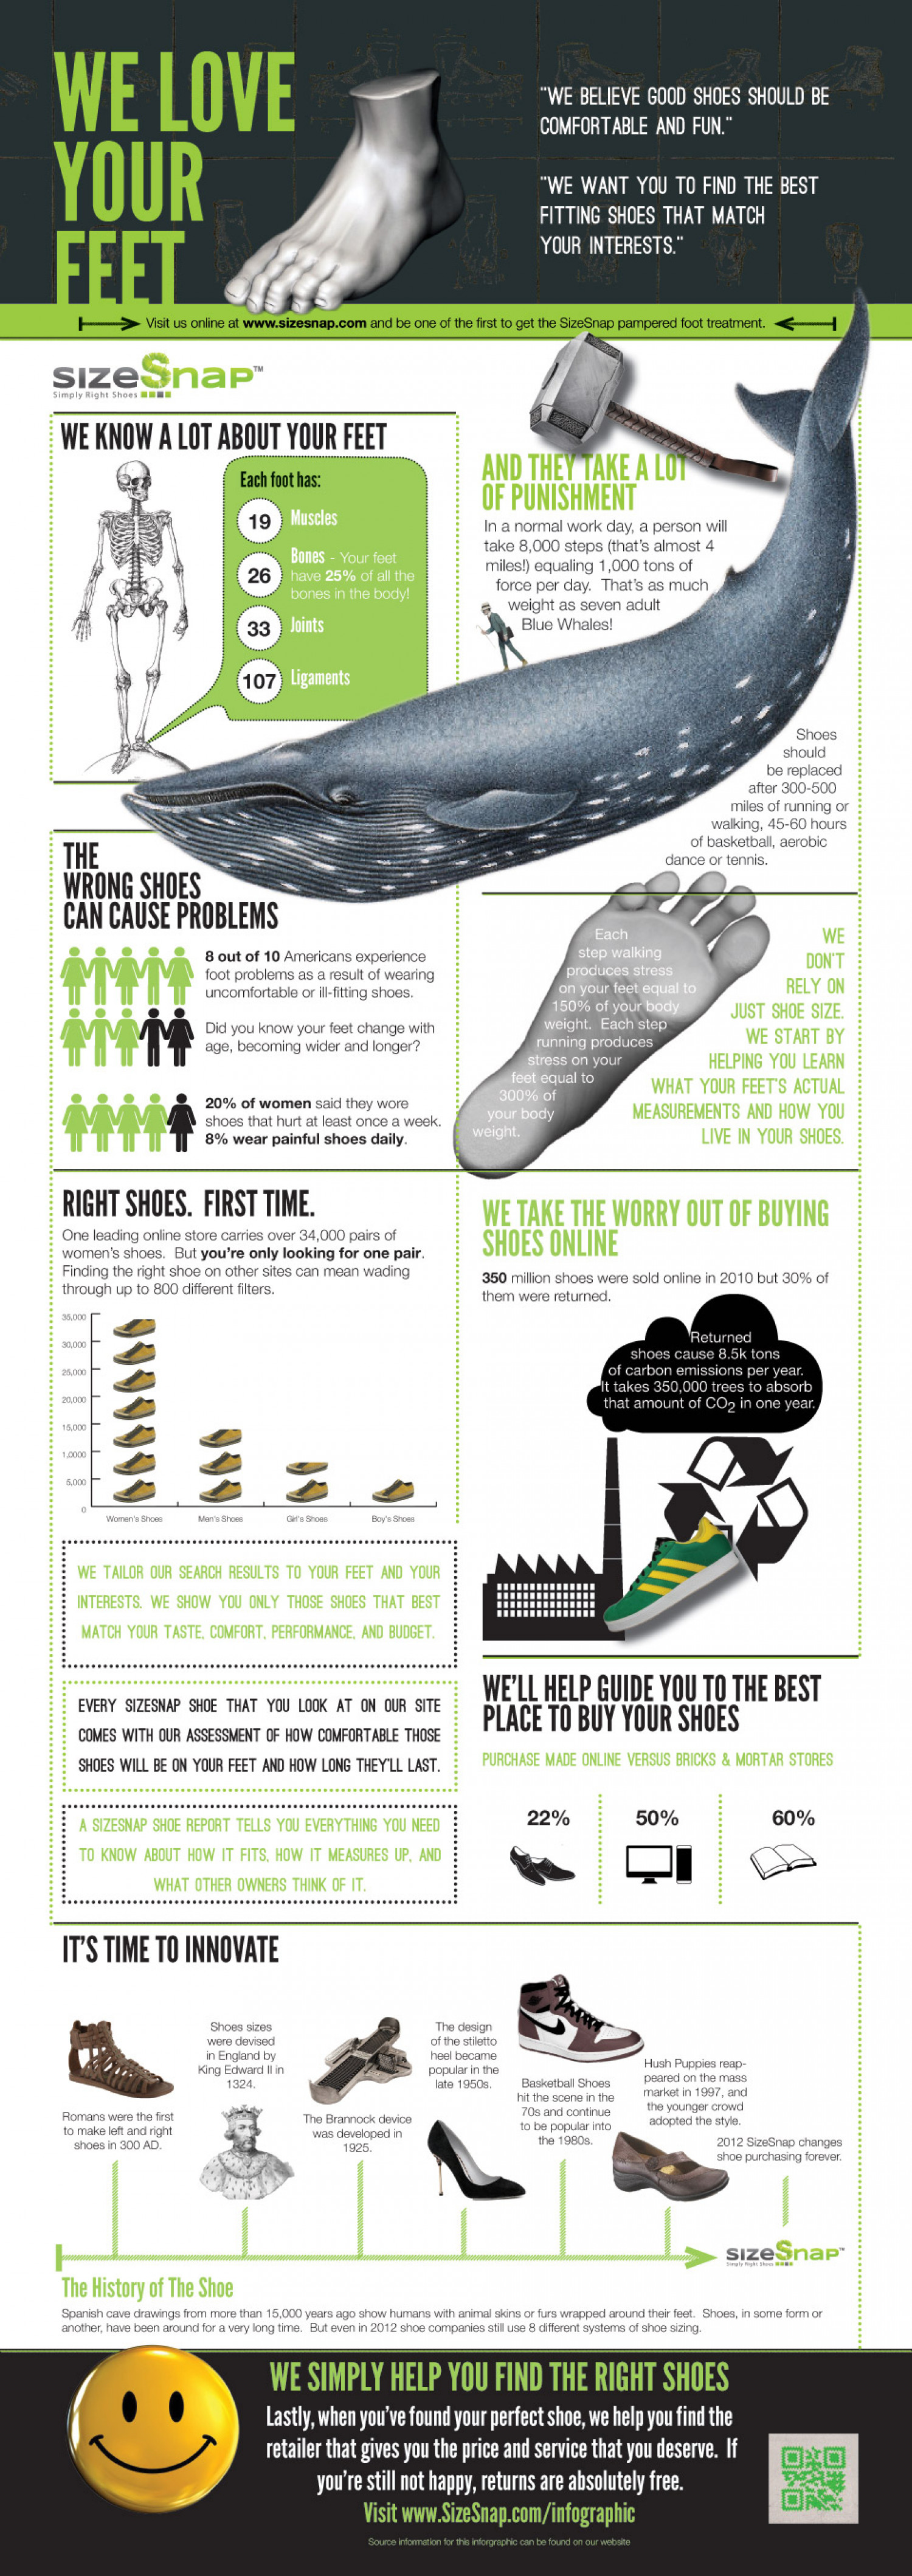 We Love Your Feet Infographic